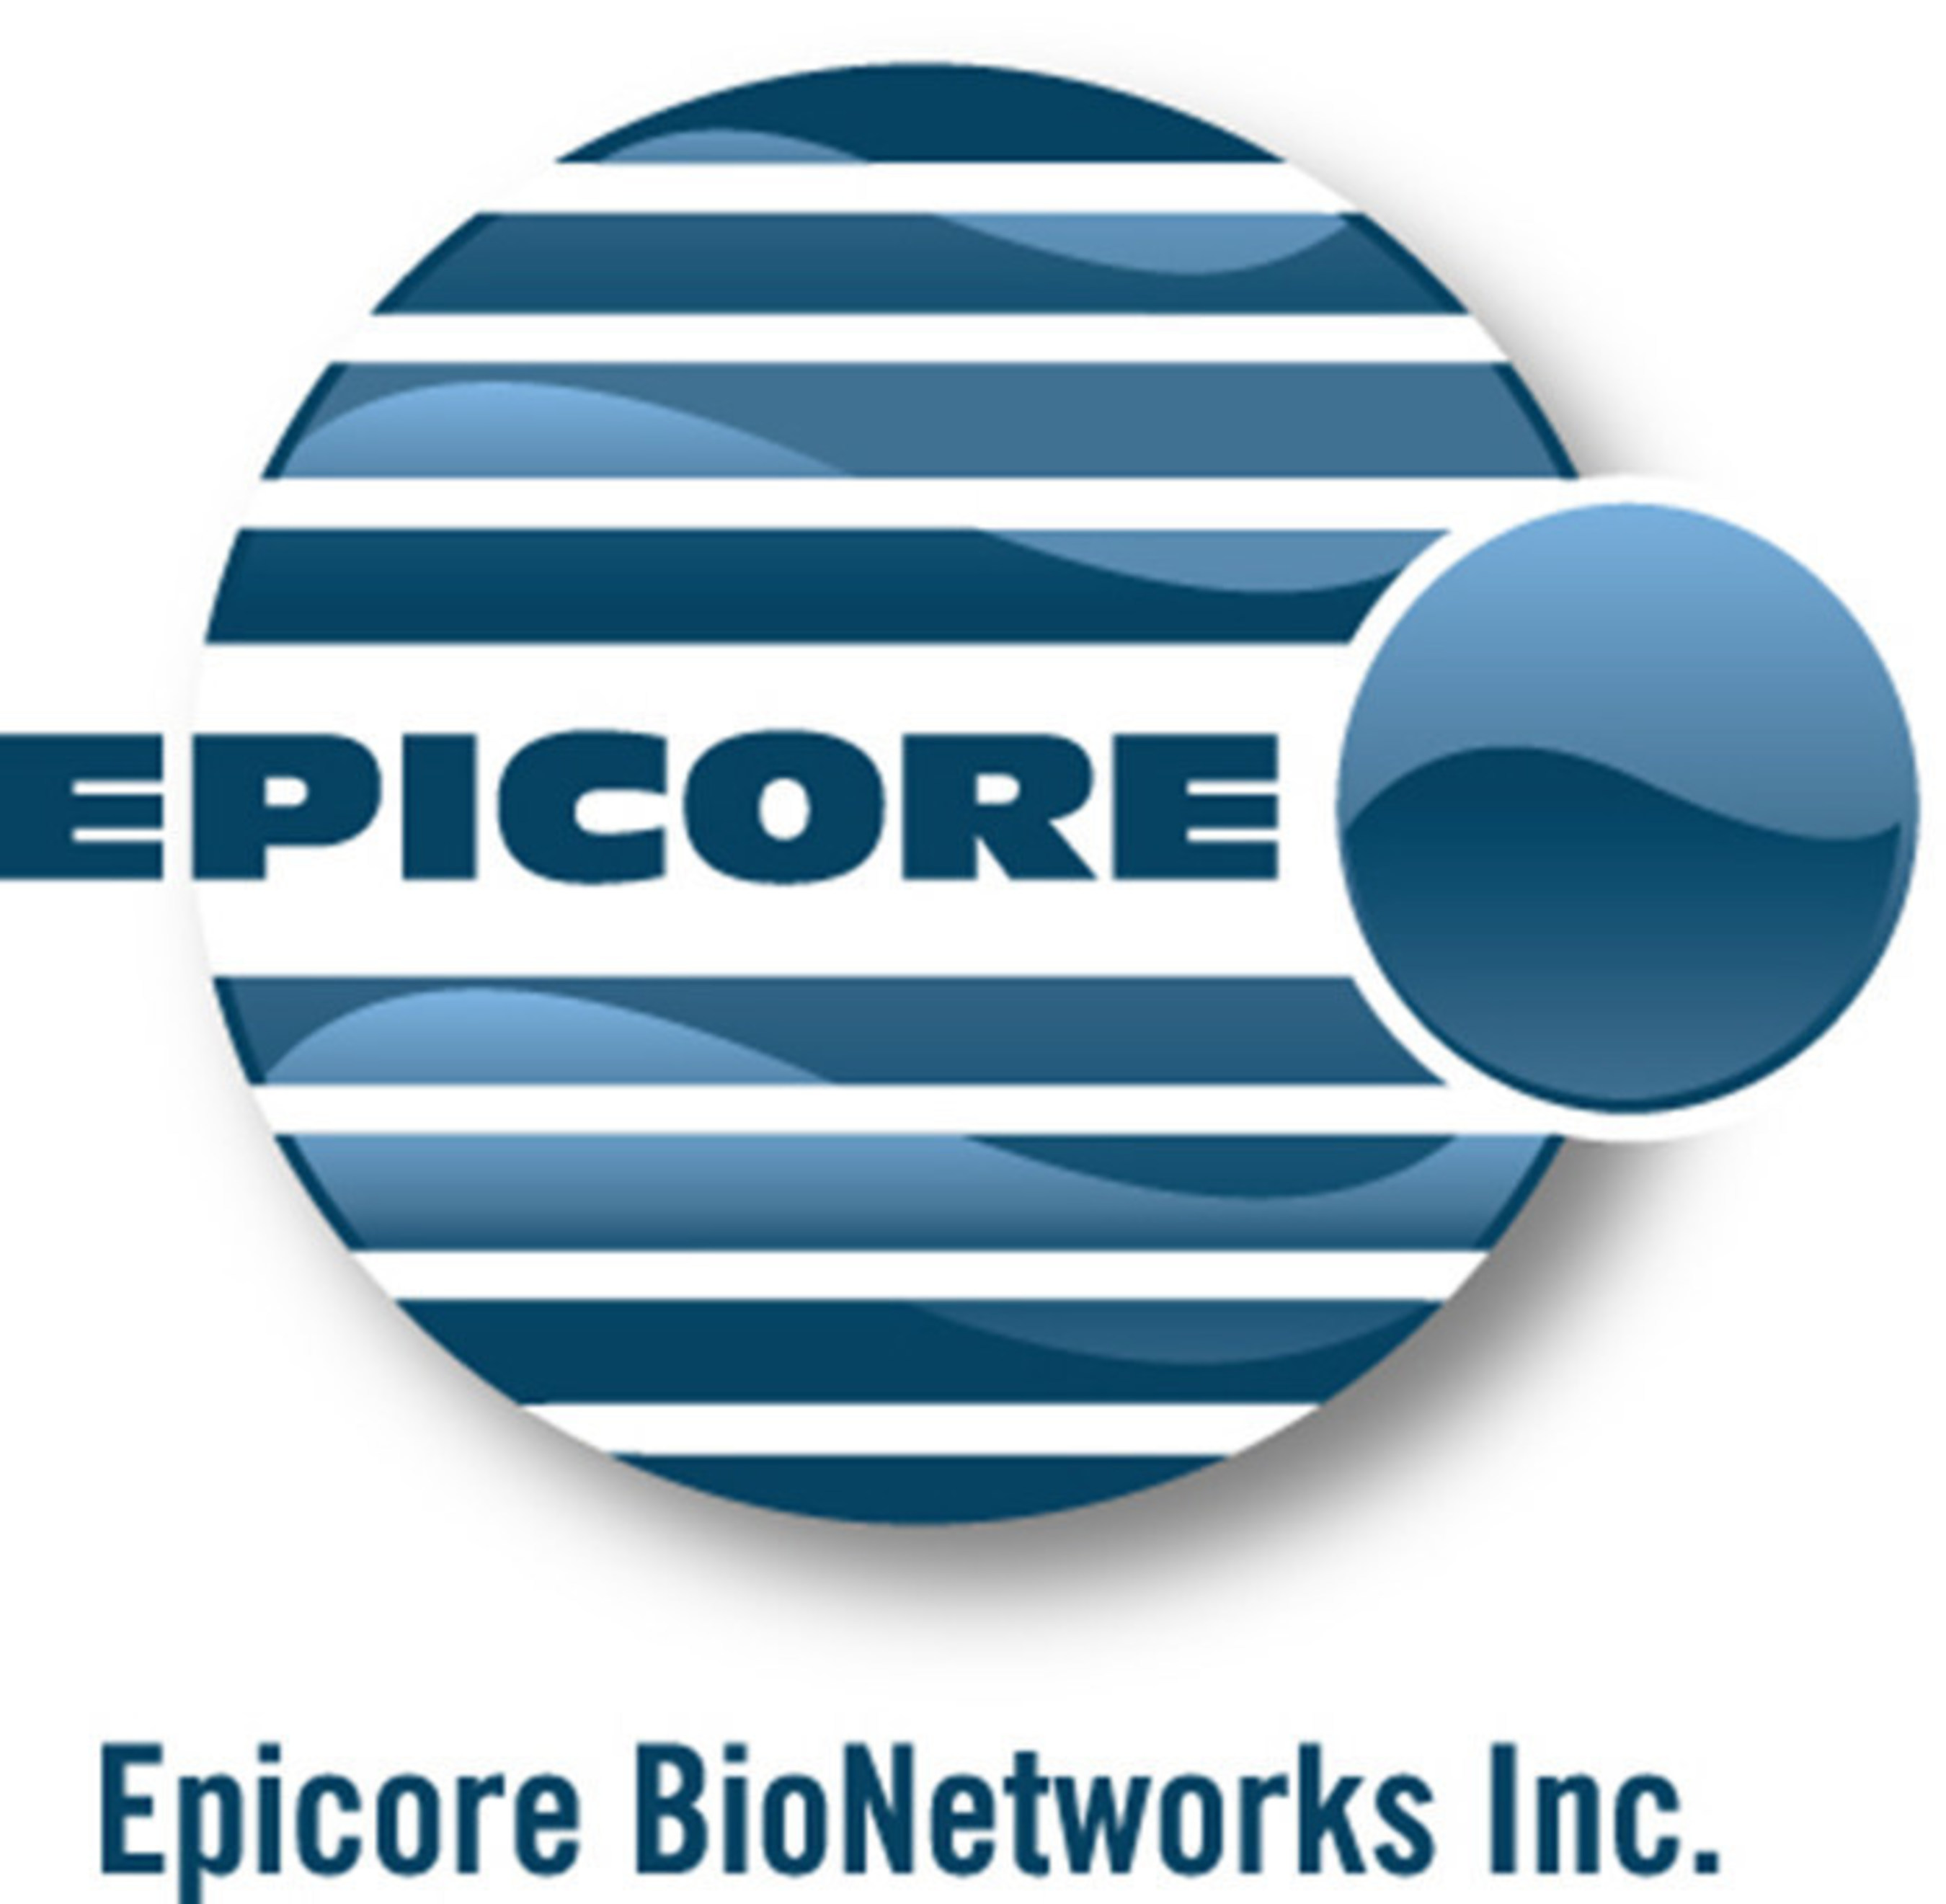 Epicore BioNetworks Inc. Reports Second Quarter Results for Fiscal Year 2016